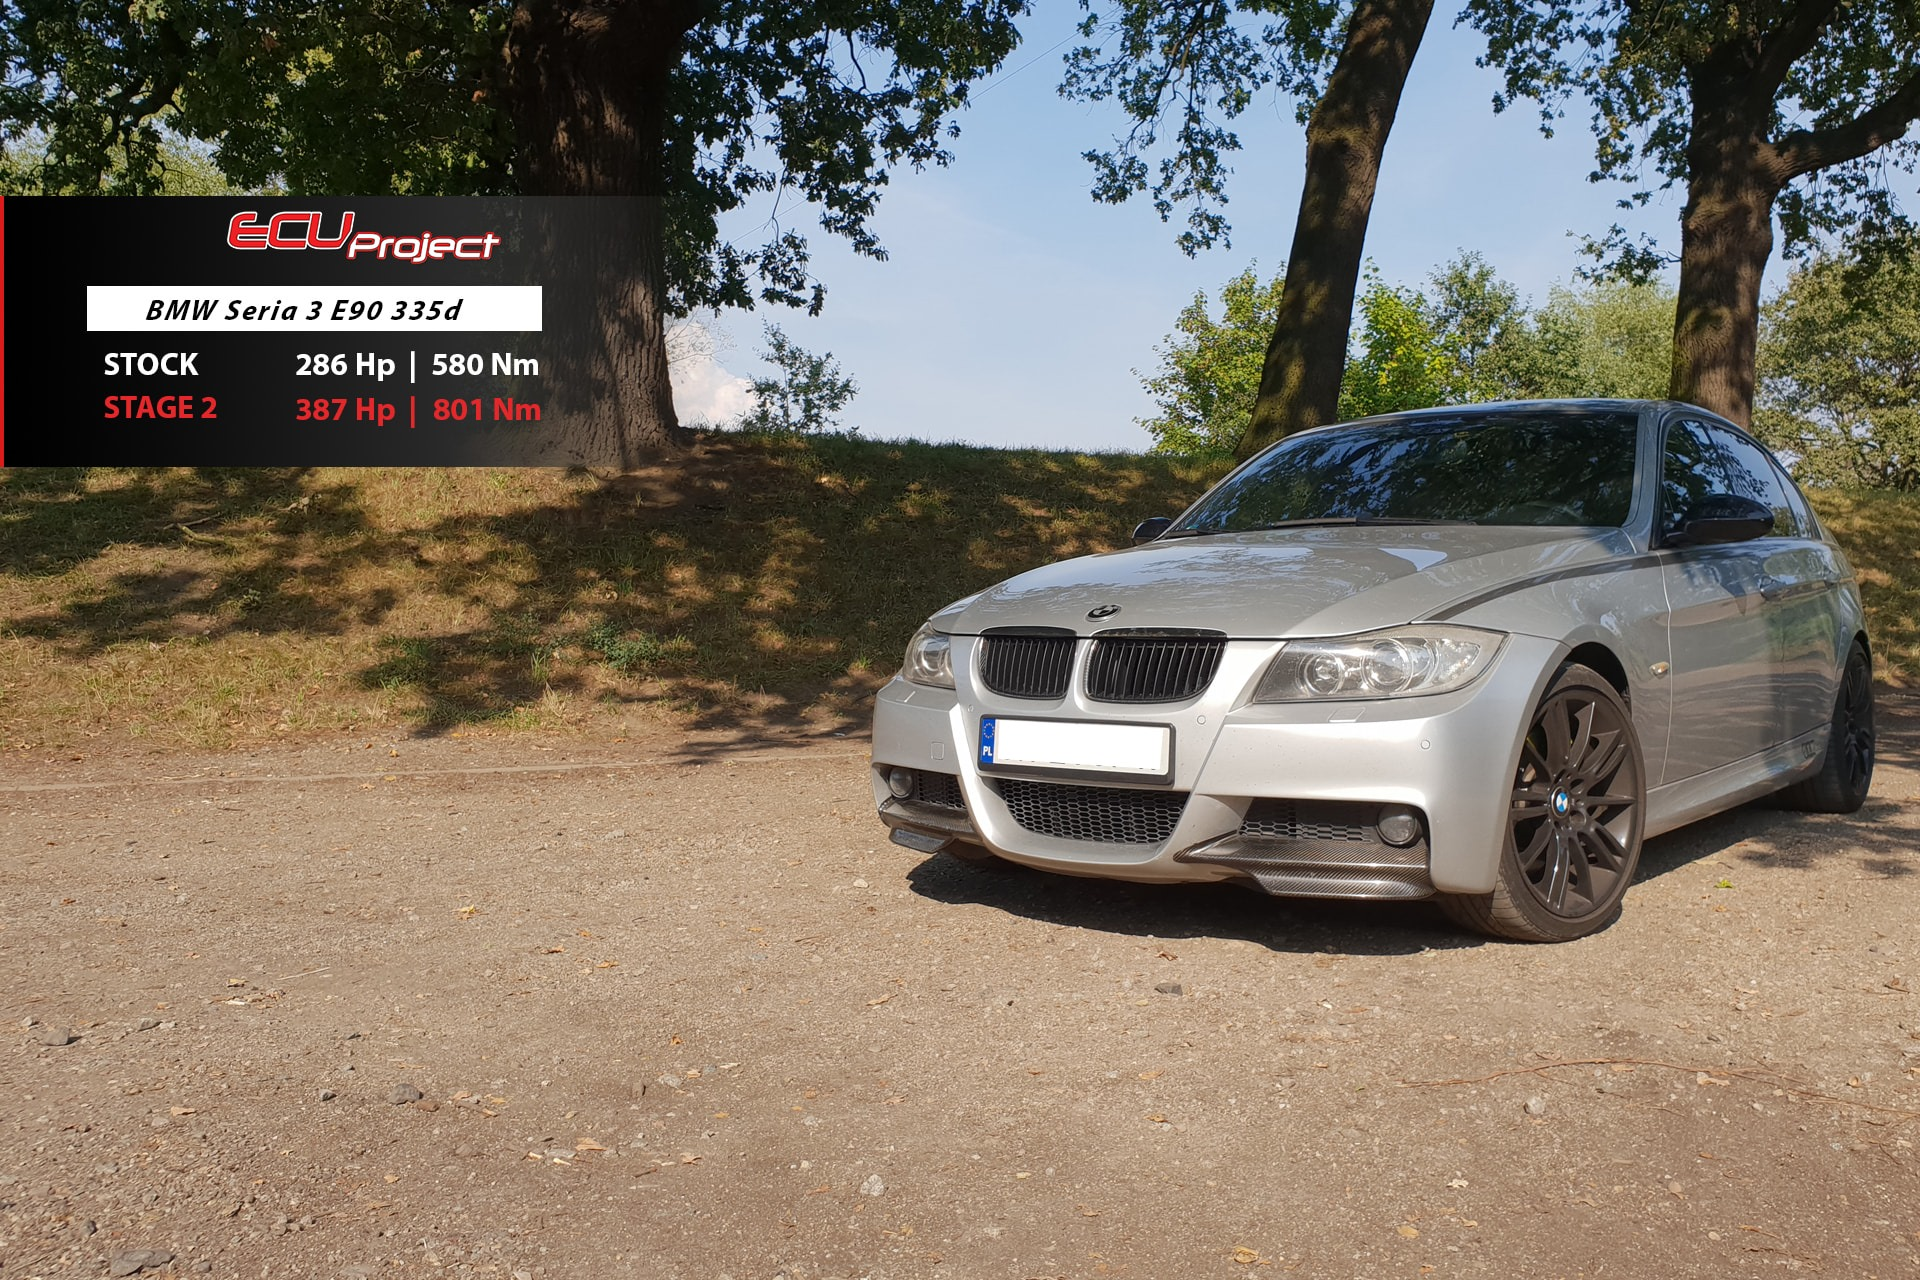 BMW E90 335d Stage 2